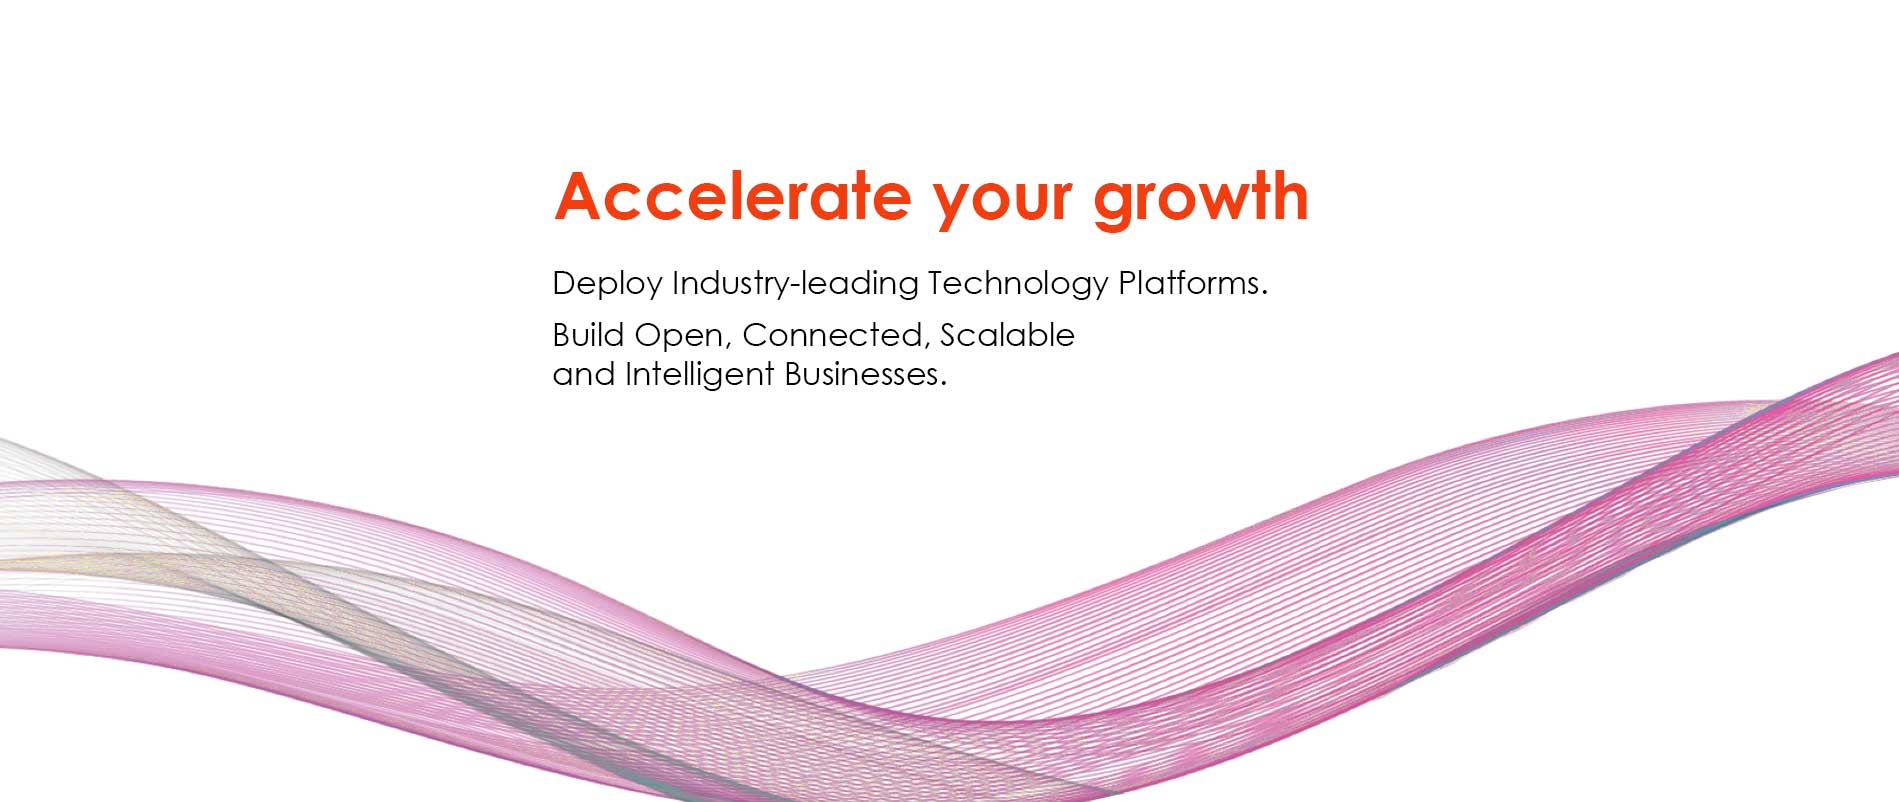 Speed up your website for your business growth